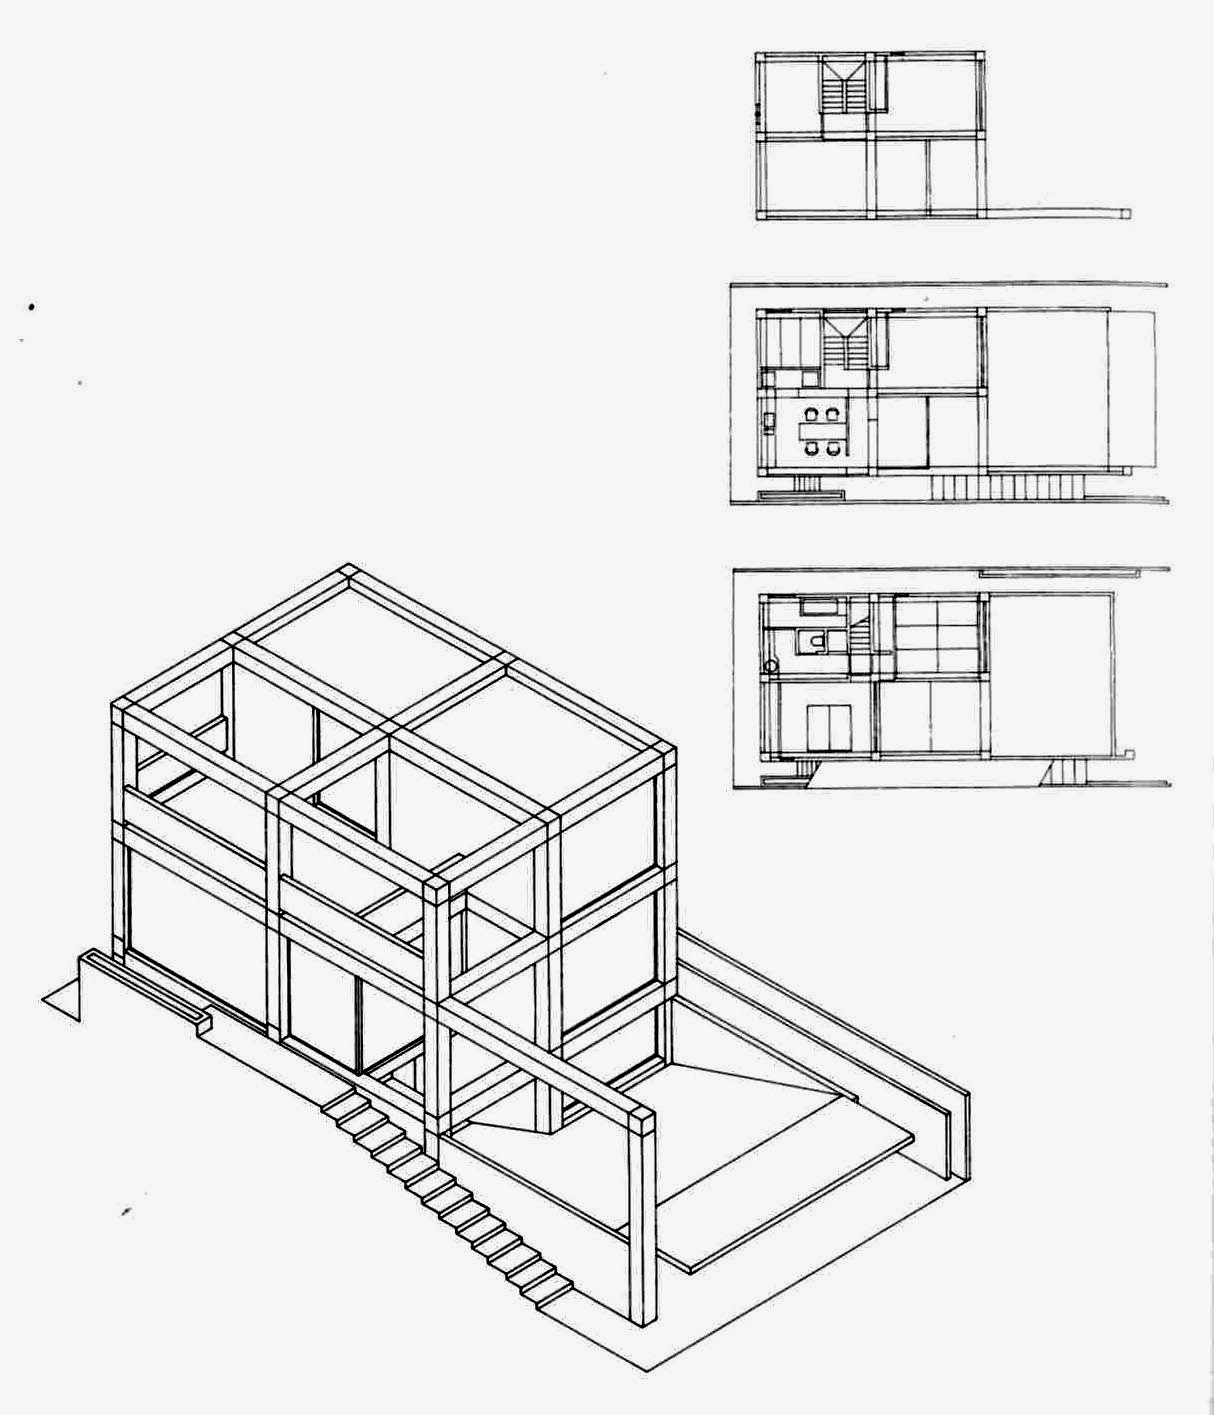 100 tadao ando floor plans first floor plan architecture architecture as aesthetics onishi house by tadao ando